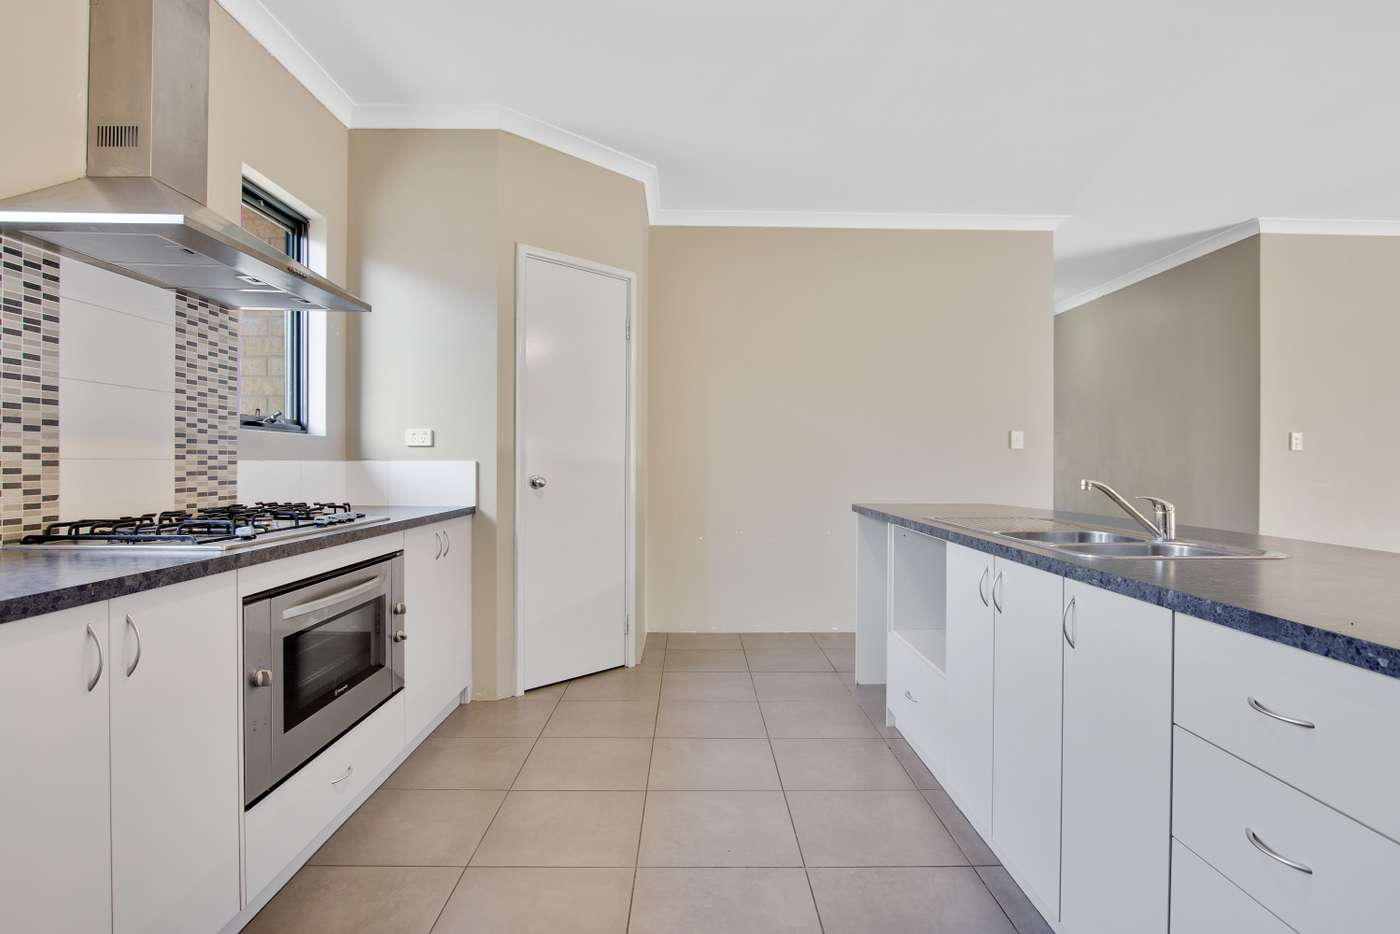 Seventh view of Homely house listing, 3 Apsley Circle, Millbridge WA 6232